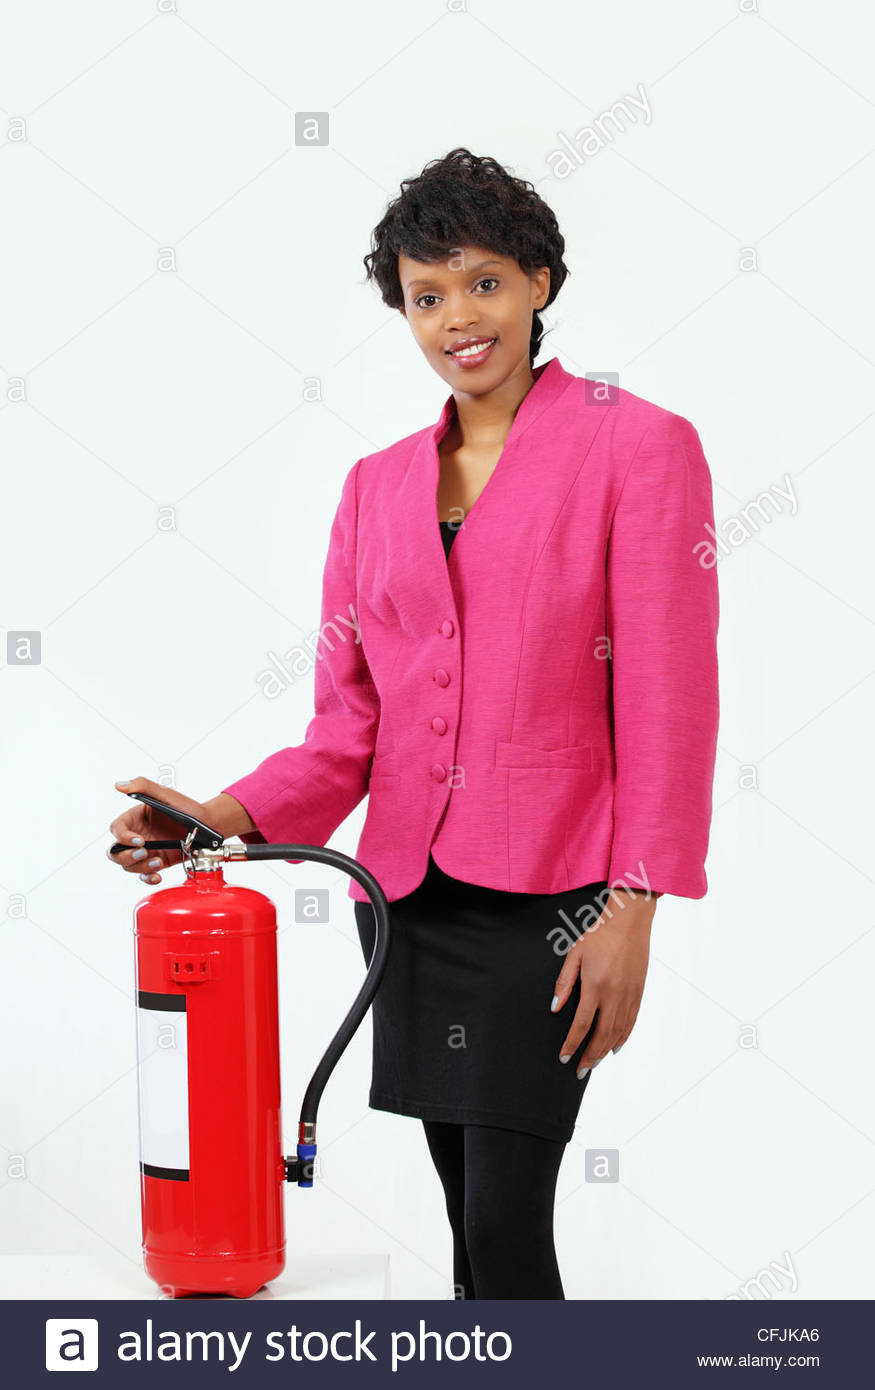 Woman presenting fire extinguisher - Stock Image